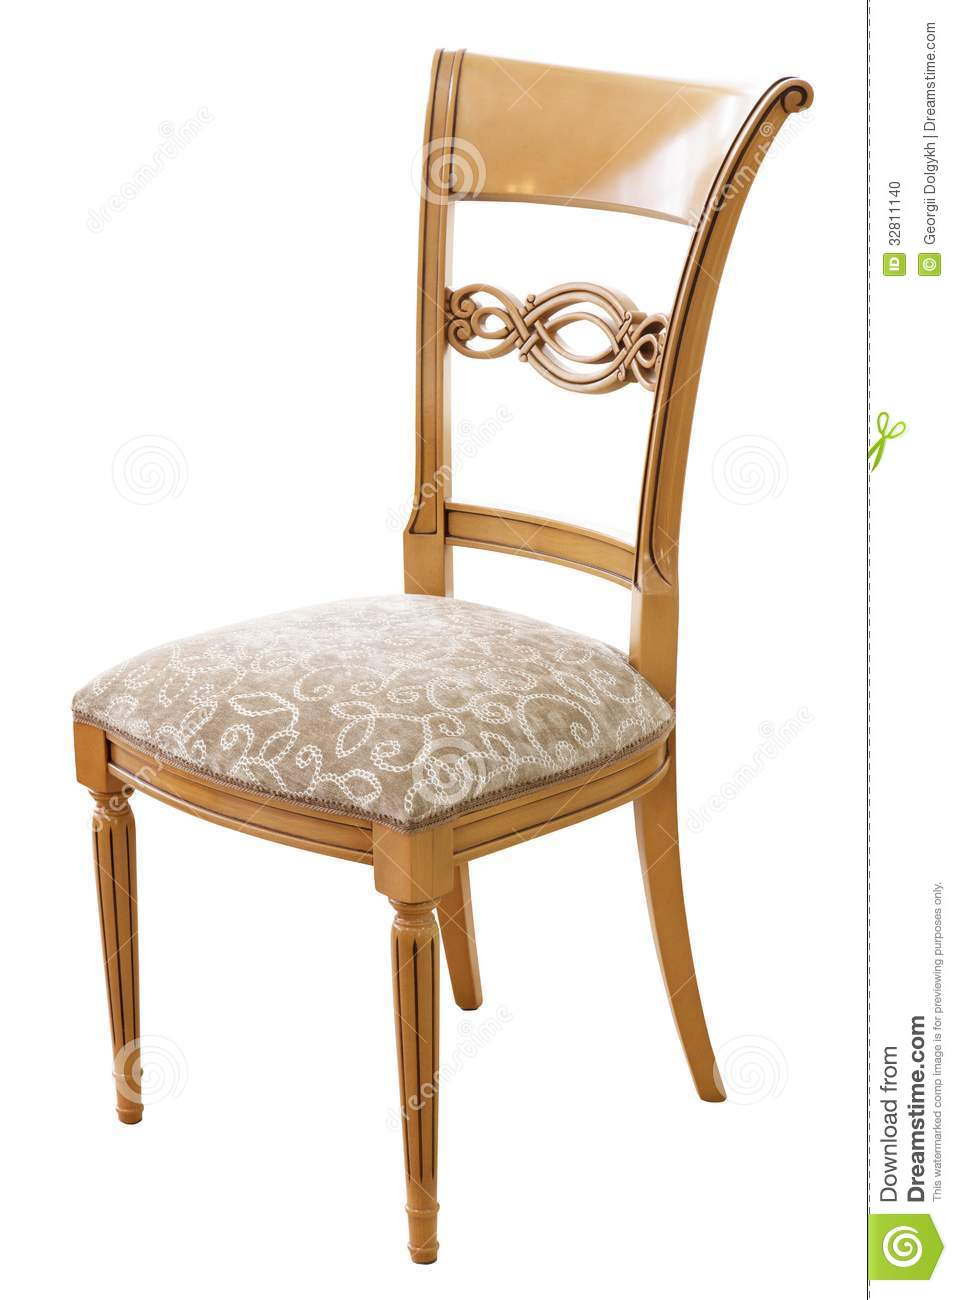 Classical style chair stock photo image 32811140 - Chaise style ecolier ...